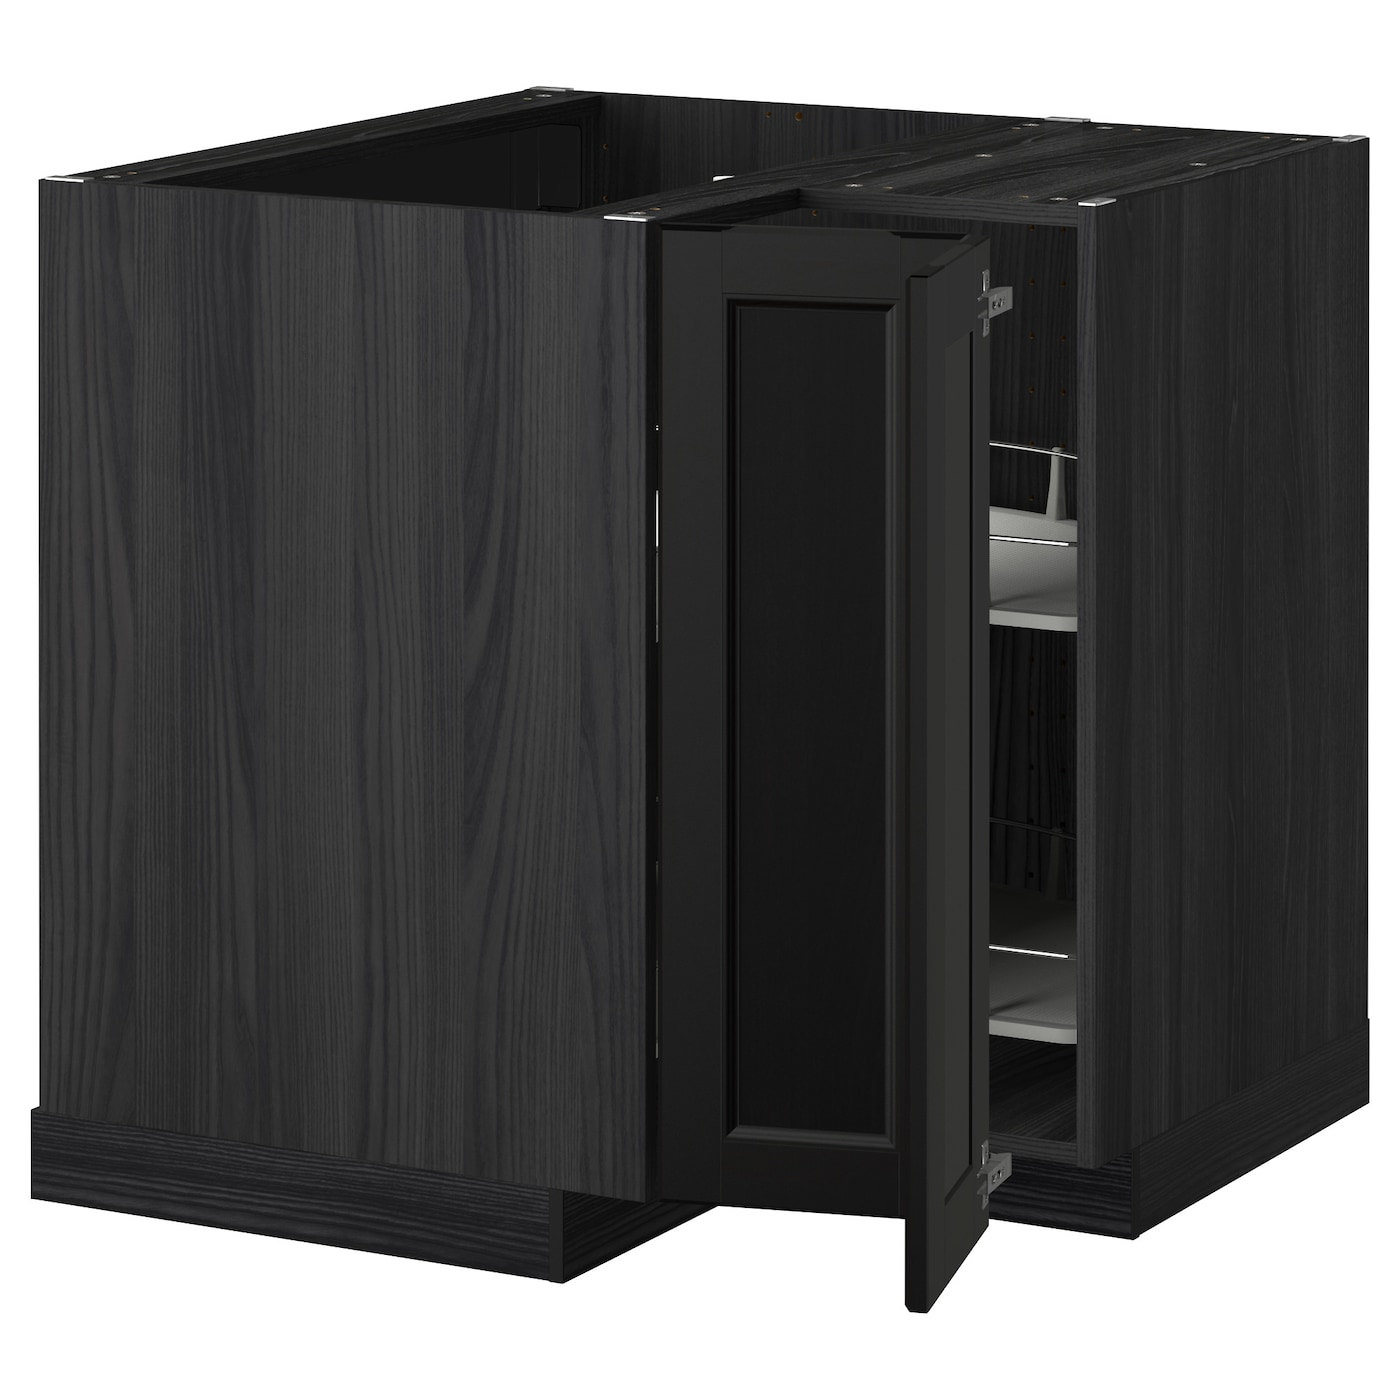 Metod corner base cabinet with carousel black laxarby black brown 88x88 cm ikea for Black corner bathroom cabinet